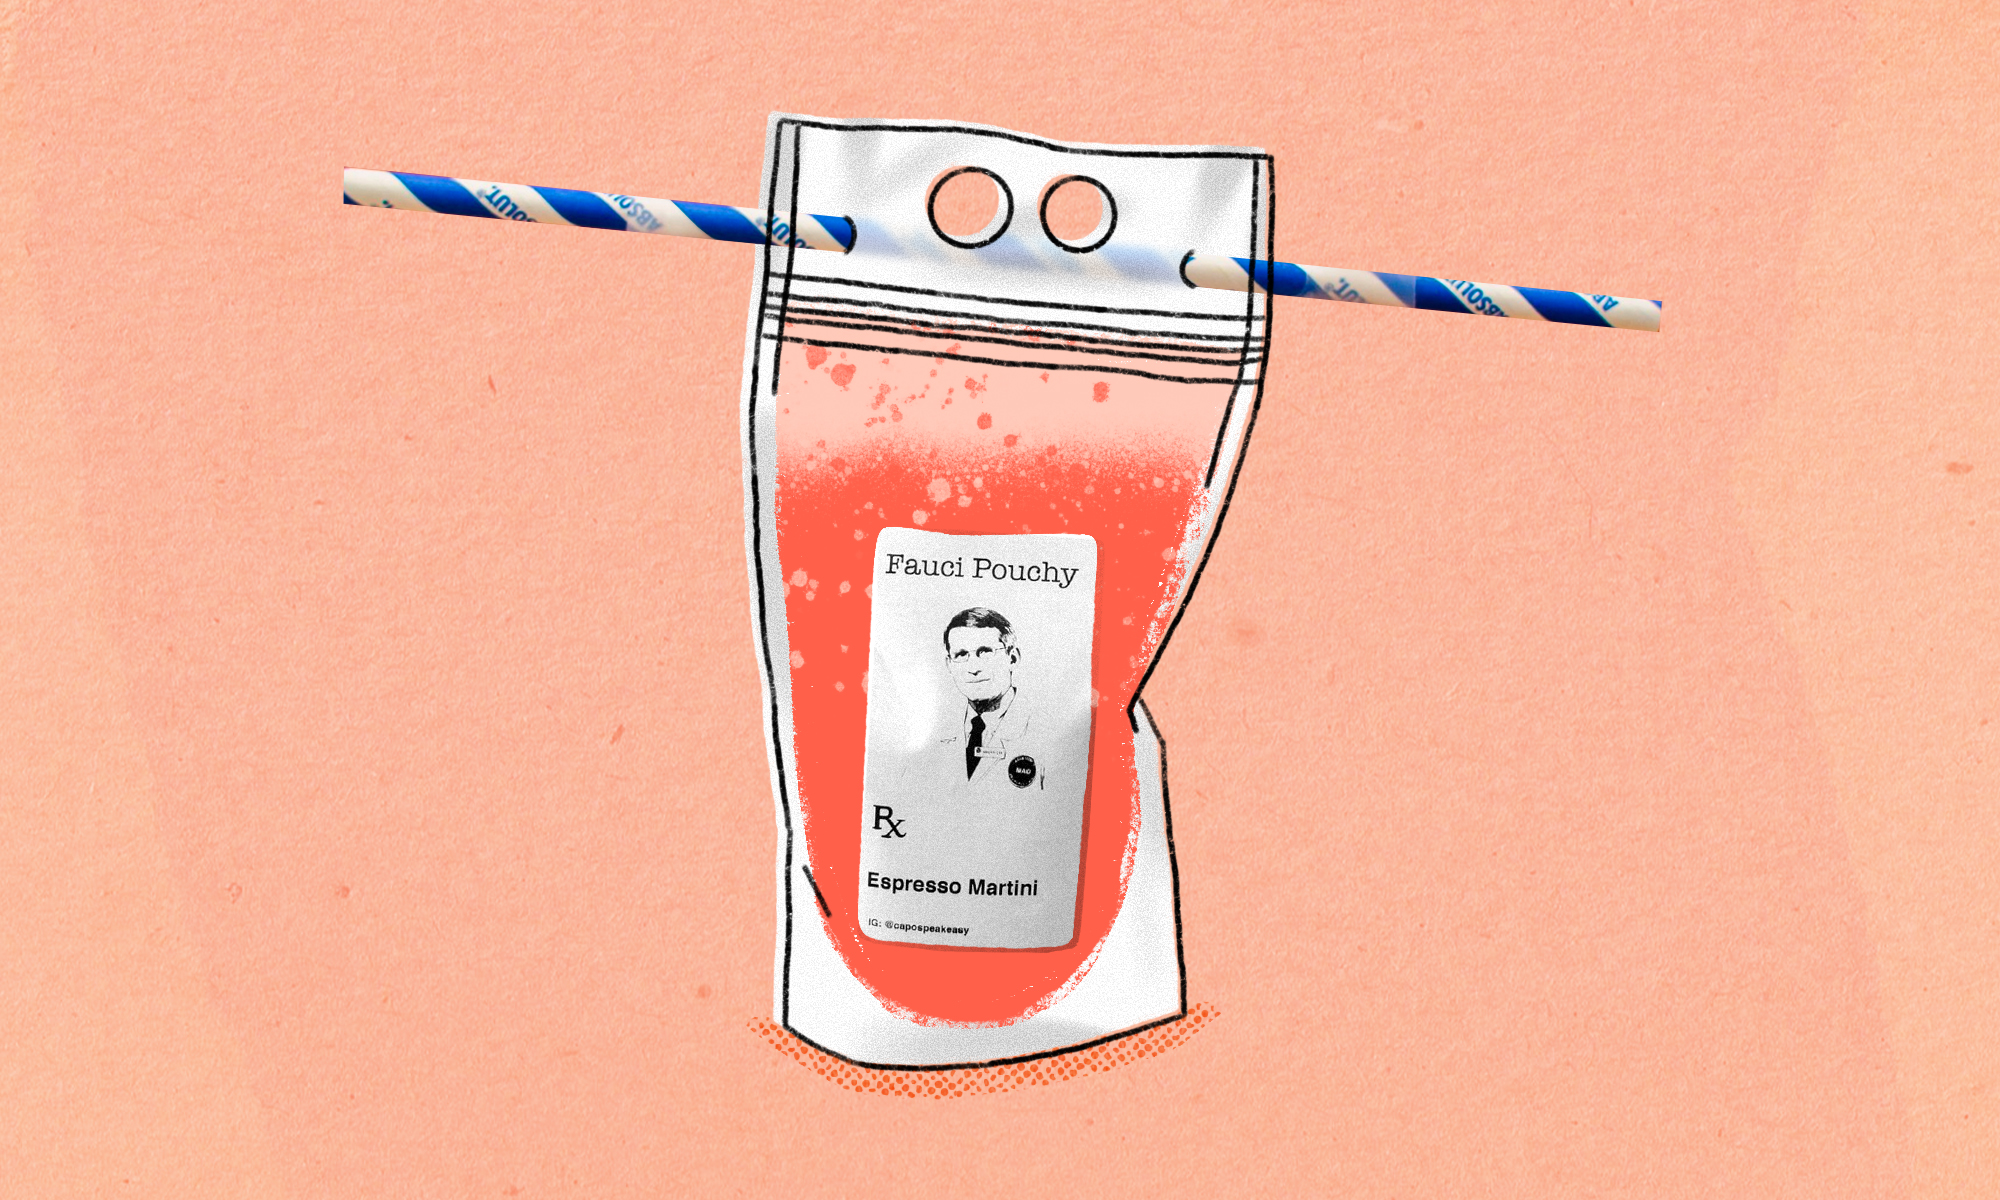 An illustration of a Fauci Pouchy with a straw stuck through the top